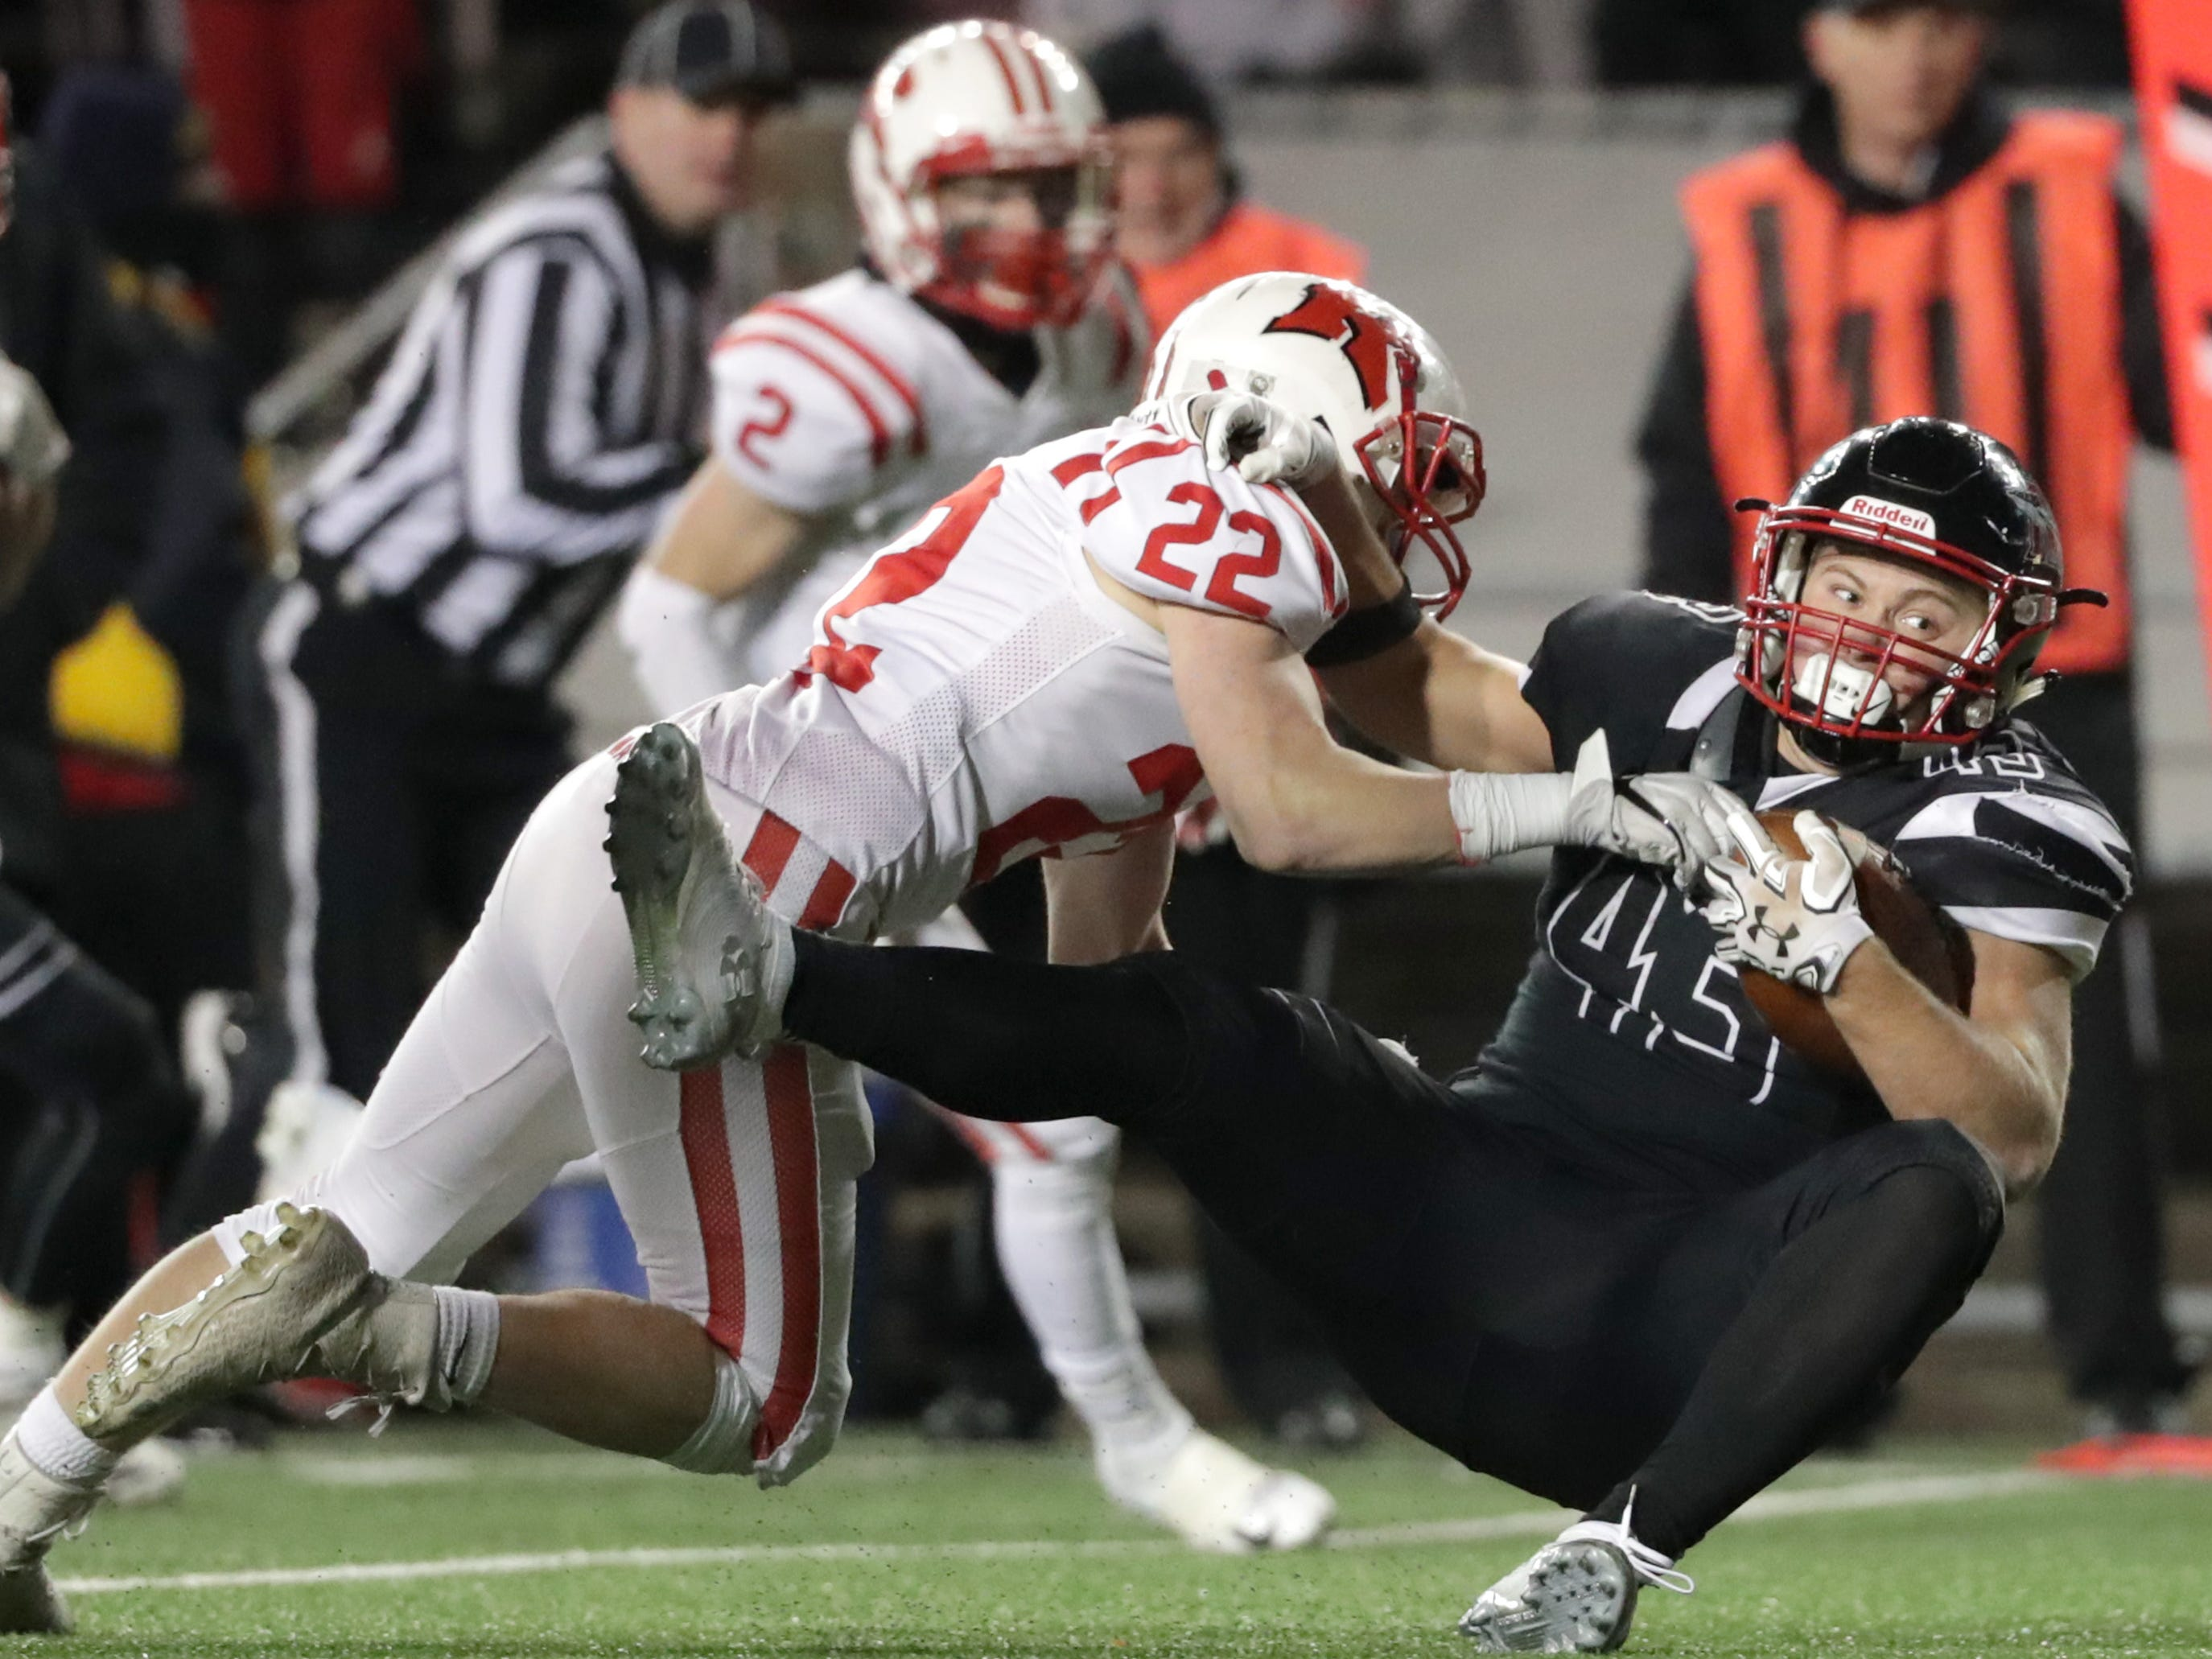 Kimberly High School's #22 Briar Barglind tackles Muskego High School's #45 Mitch Borkovec during the WIAA Division 1 state championship football game on Friday, November 16, 2018, at Camp Randall in Madison, Wis.